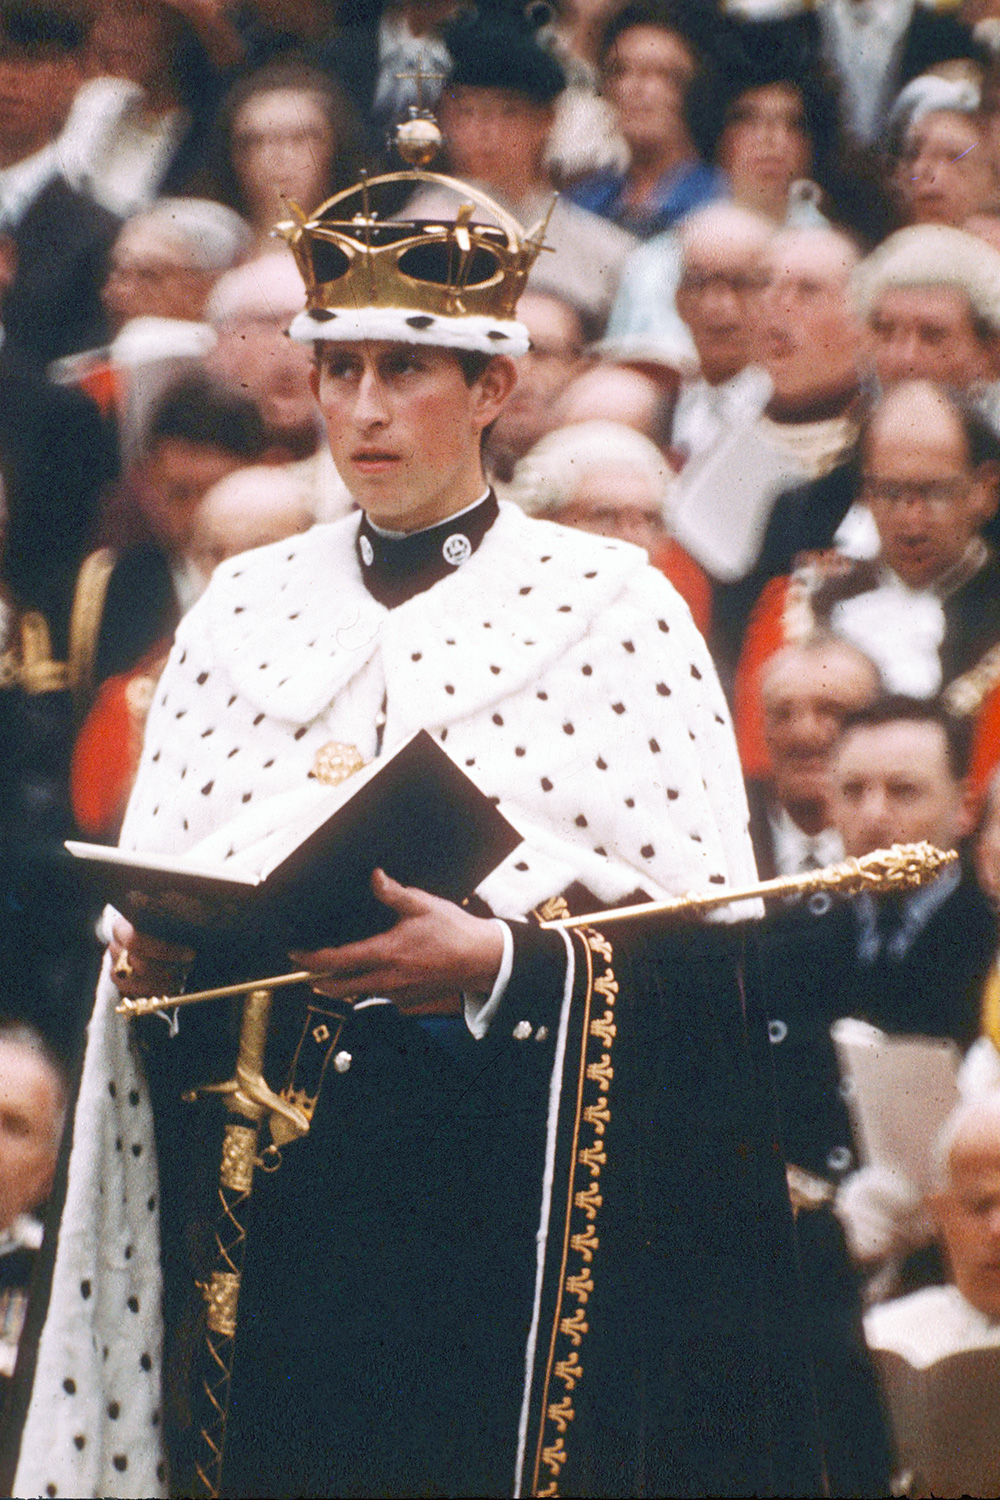 Prince Charles, Prince of Wales in his investiture robes at Caernarvon Castle on July 1, 1969